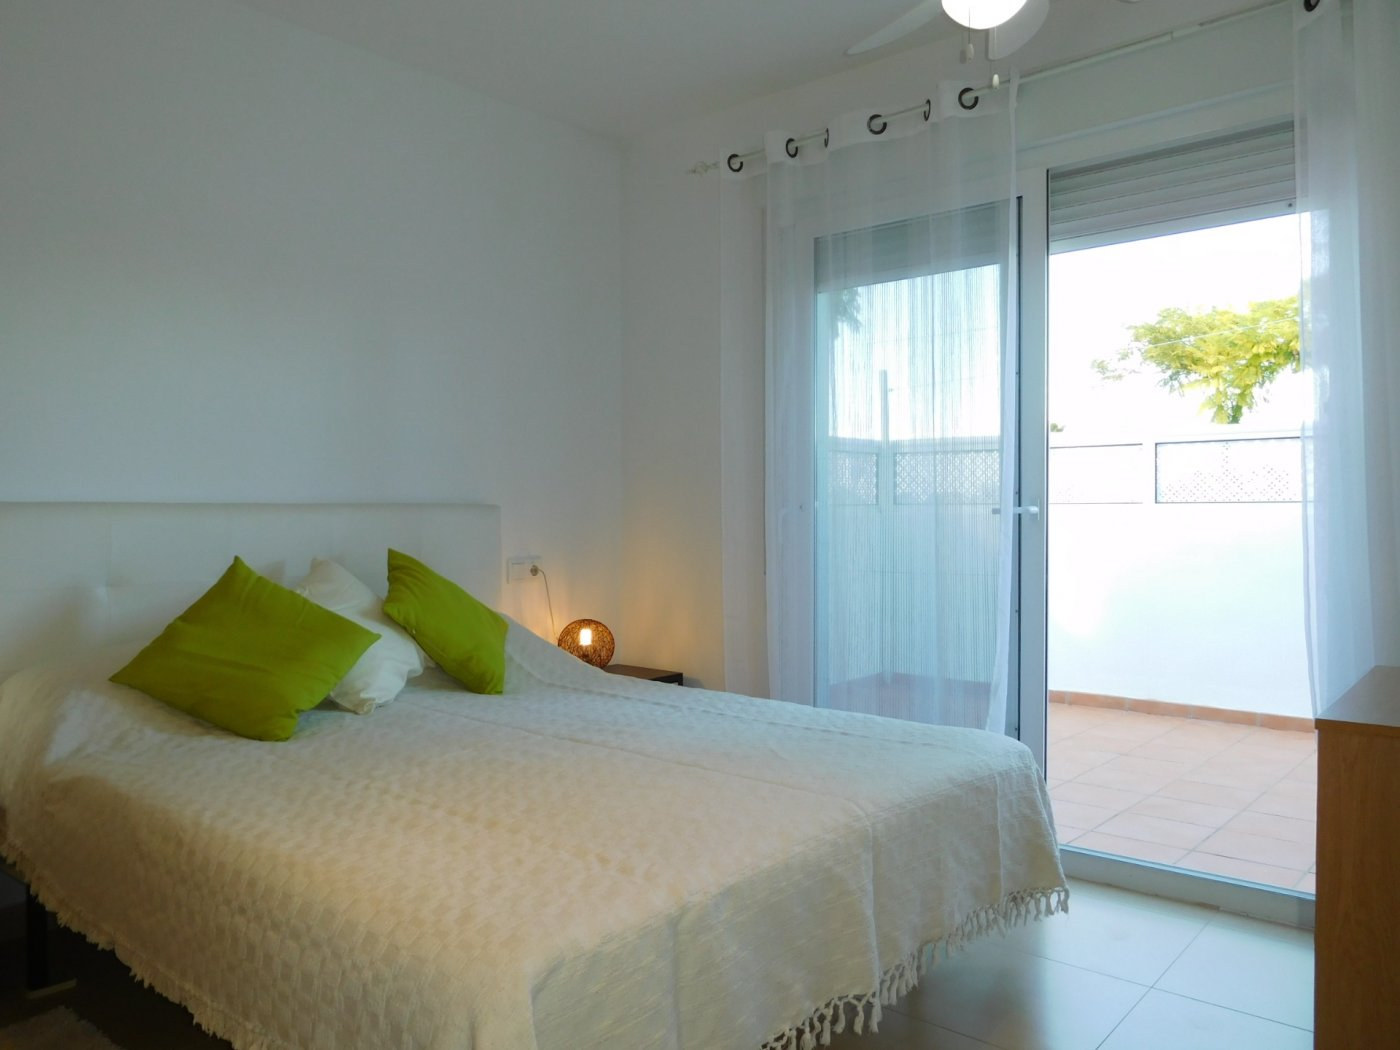 Gallery Image 10 of Flat For rent in Condado De Alhama, Alhama De Murcia With Pool